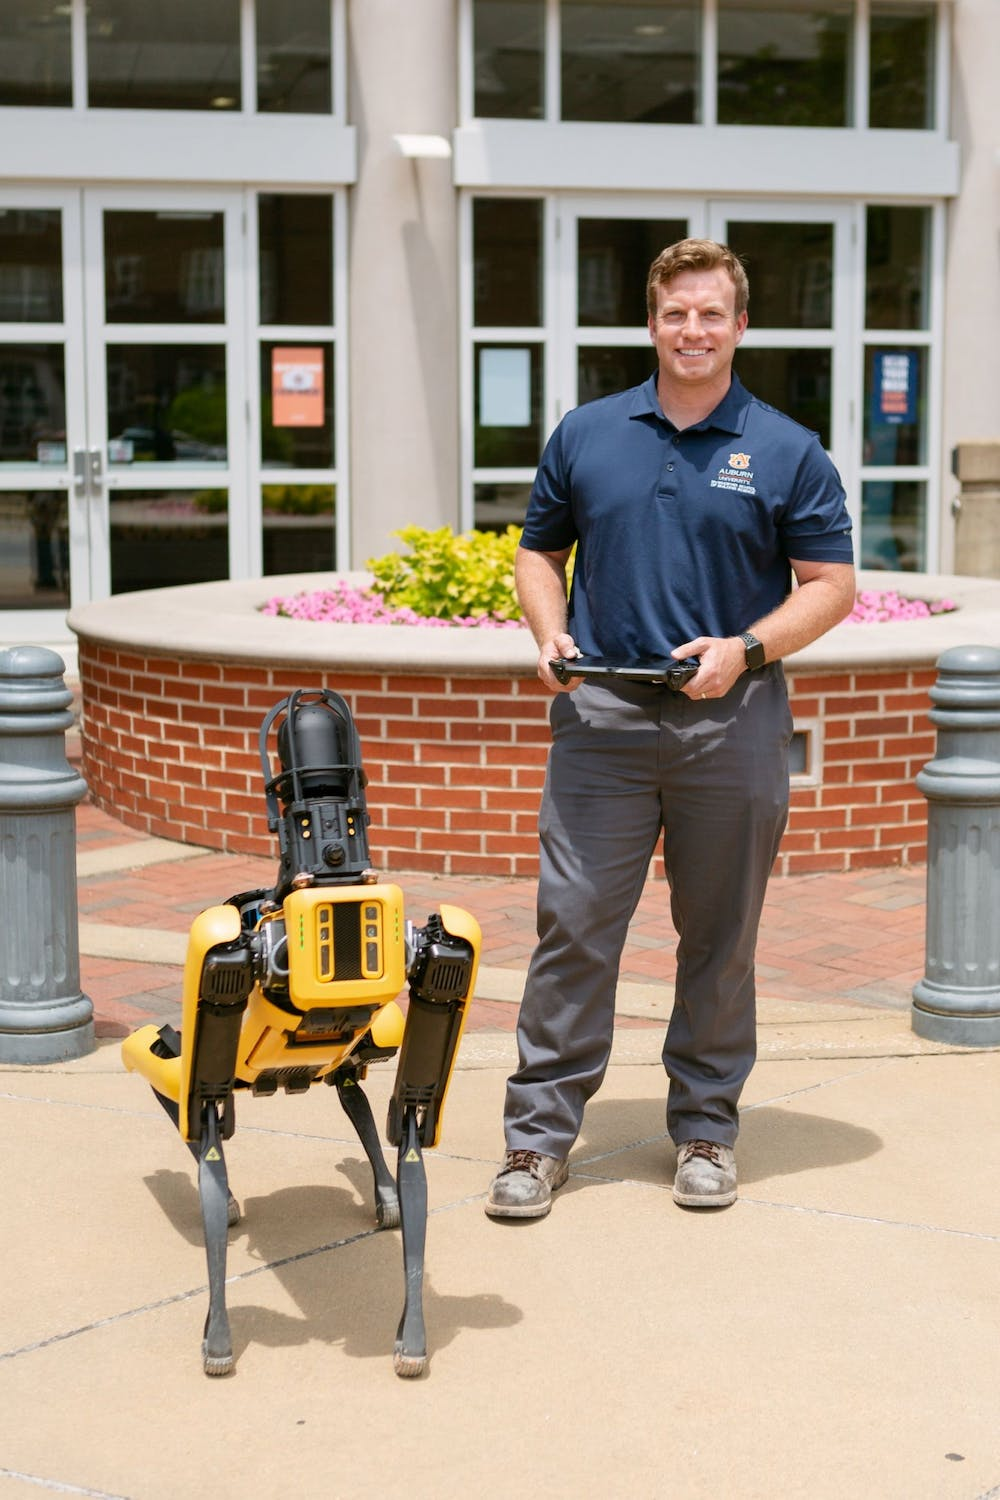 Mac the robotic dog breaking ground in construction technology